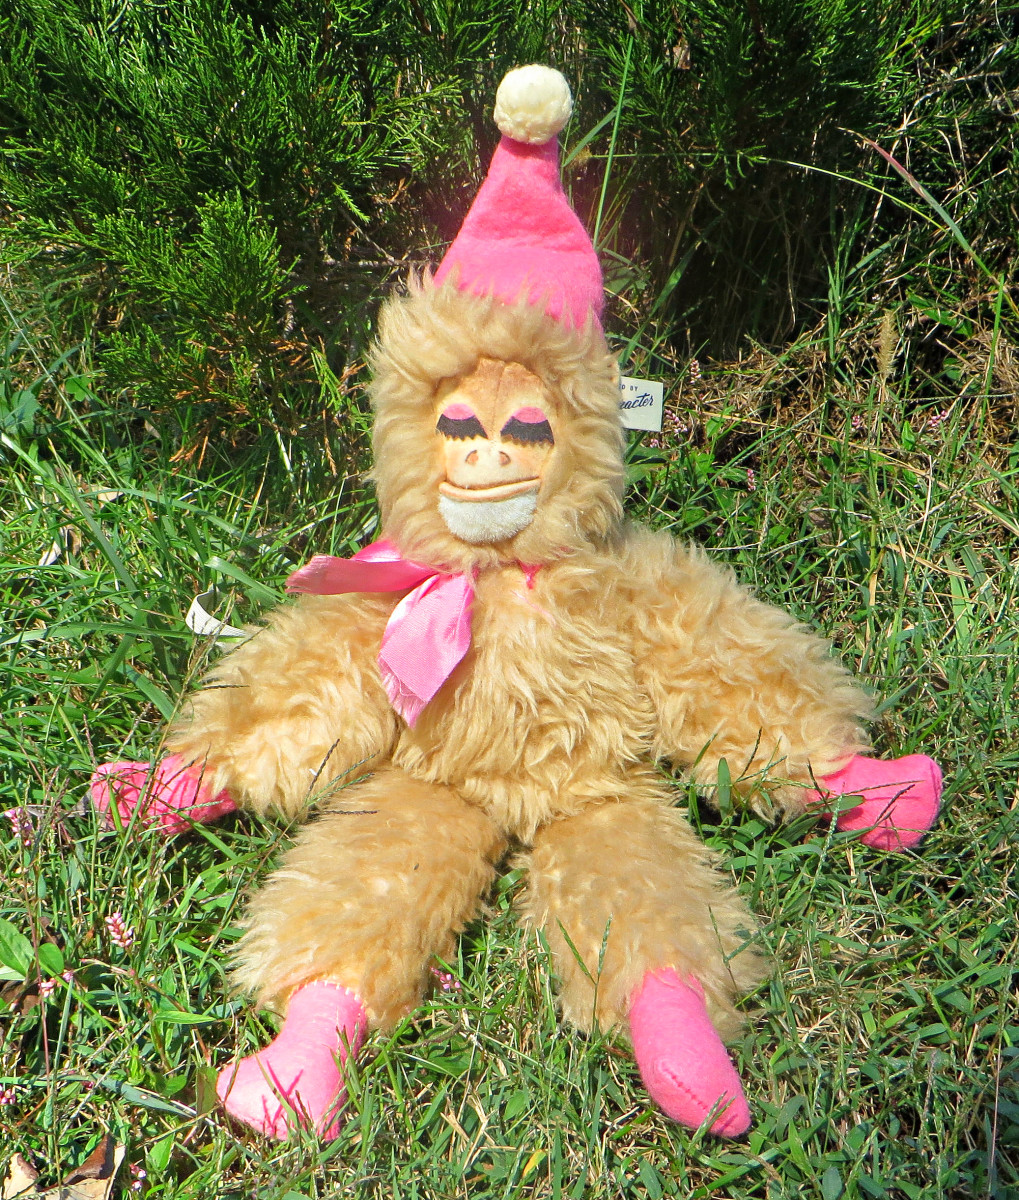 Sleepy Monkey, sometimes called Scary Monkey. She came out in the late 1940s, & was part of the bed time collection of stuffed animals up to 1959. She has the special wire patent, which was a method of making toy animal figures with a internal wire.